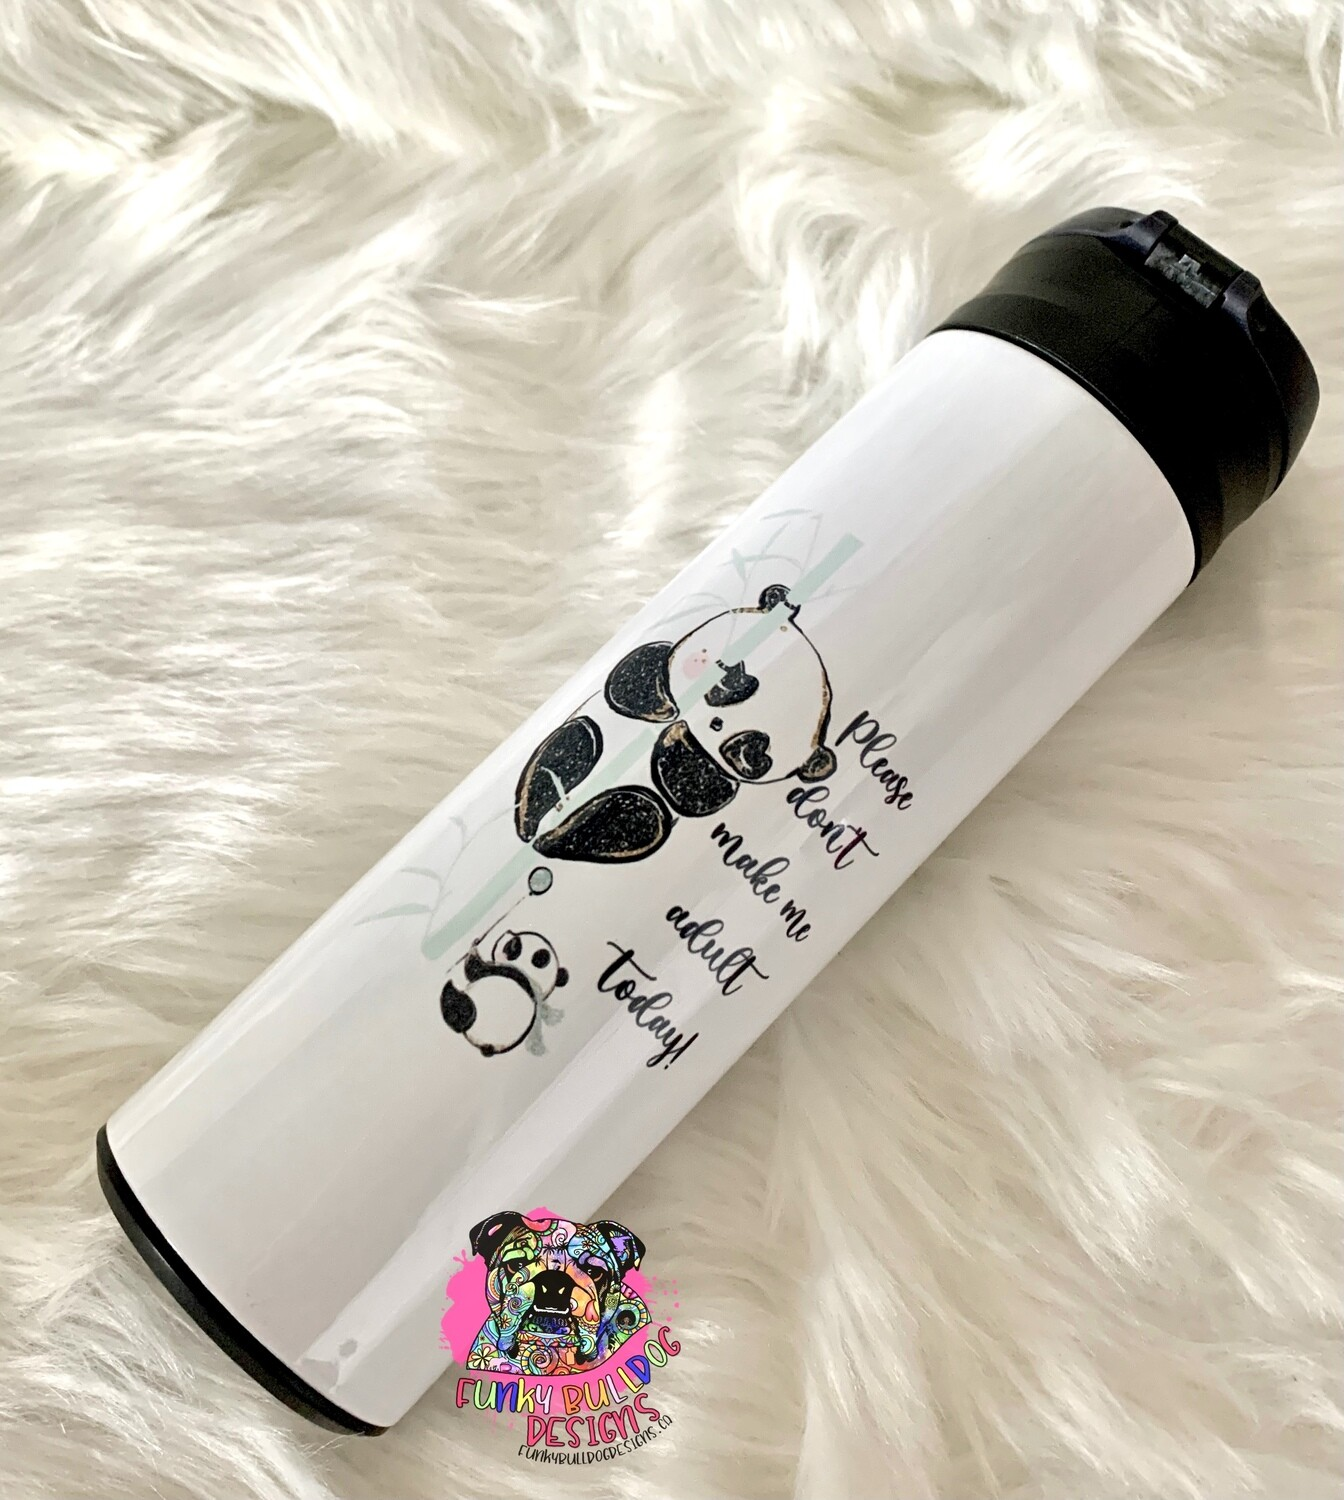 17oz stainless steel tumbler - Please don't make me adult today - Panda Design